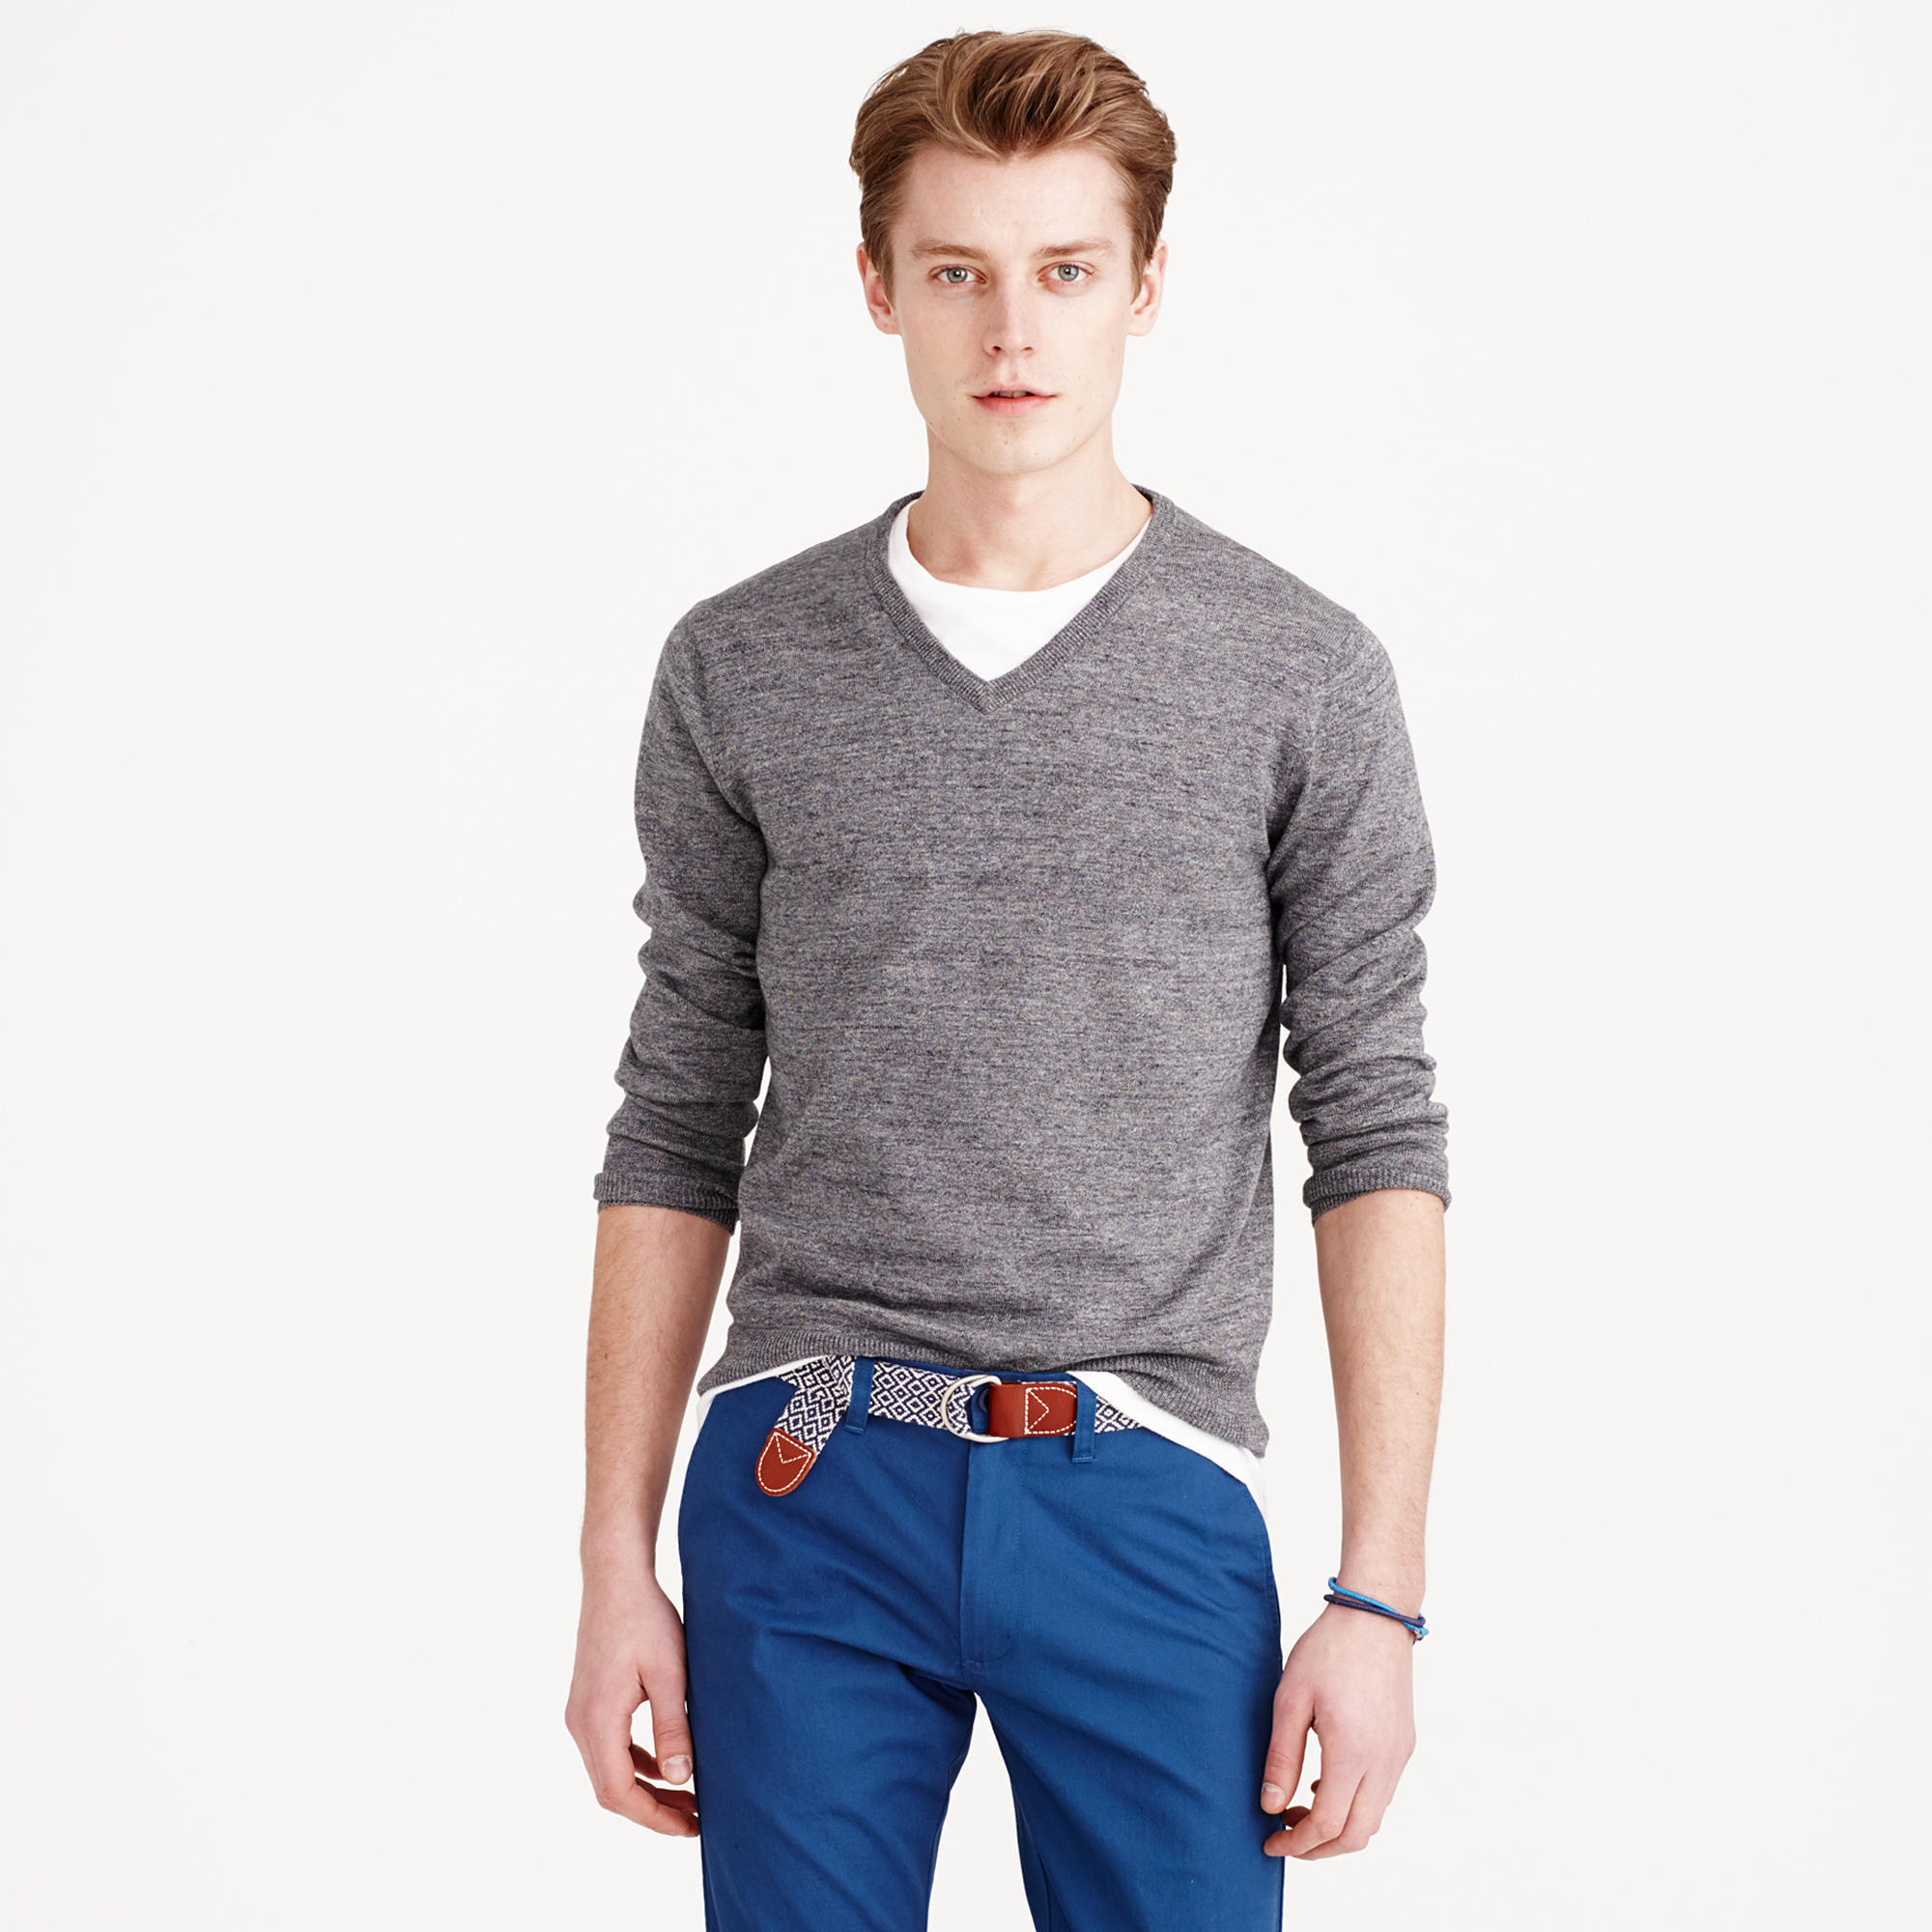 Men's Grey V-neck Sweater, White Crew-neck T-shirt, Blue Chinos ...